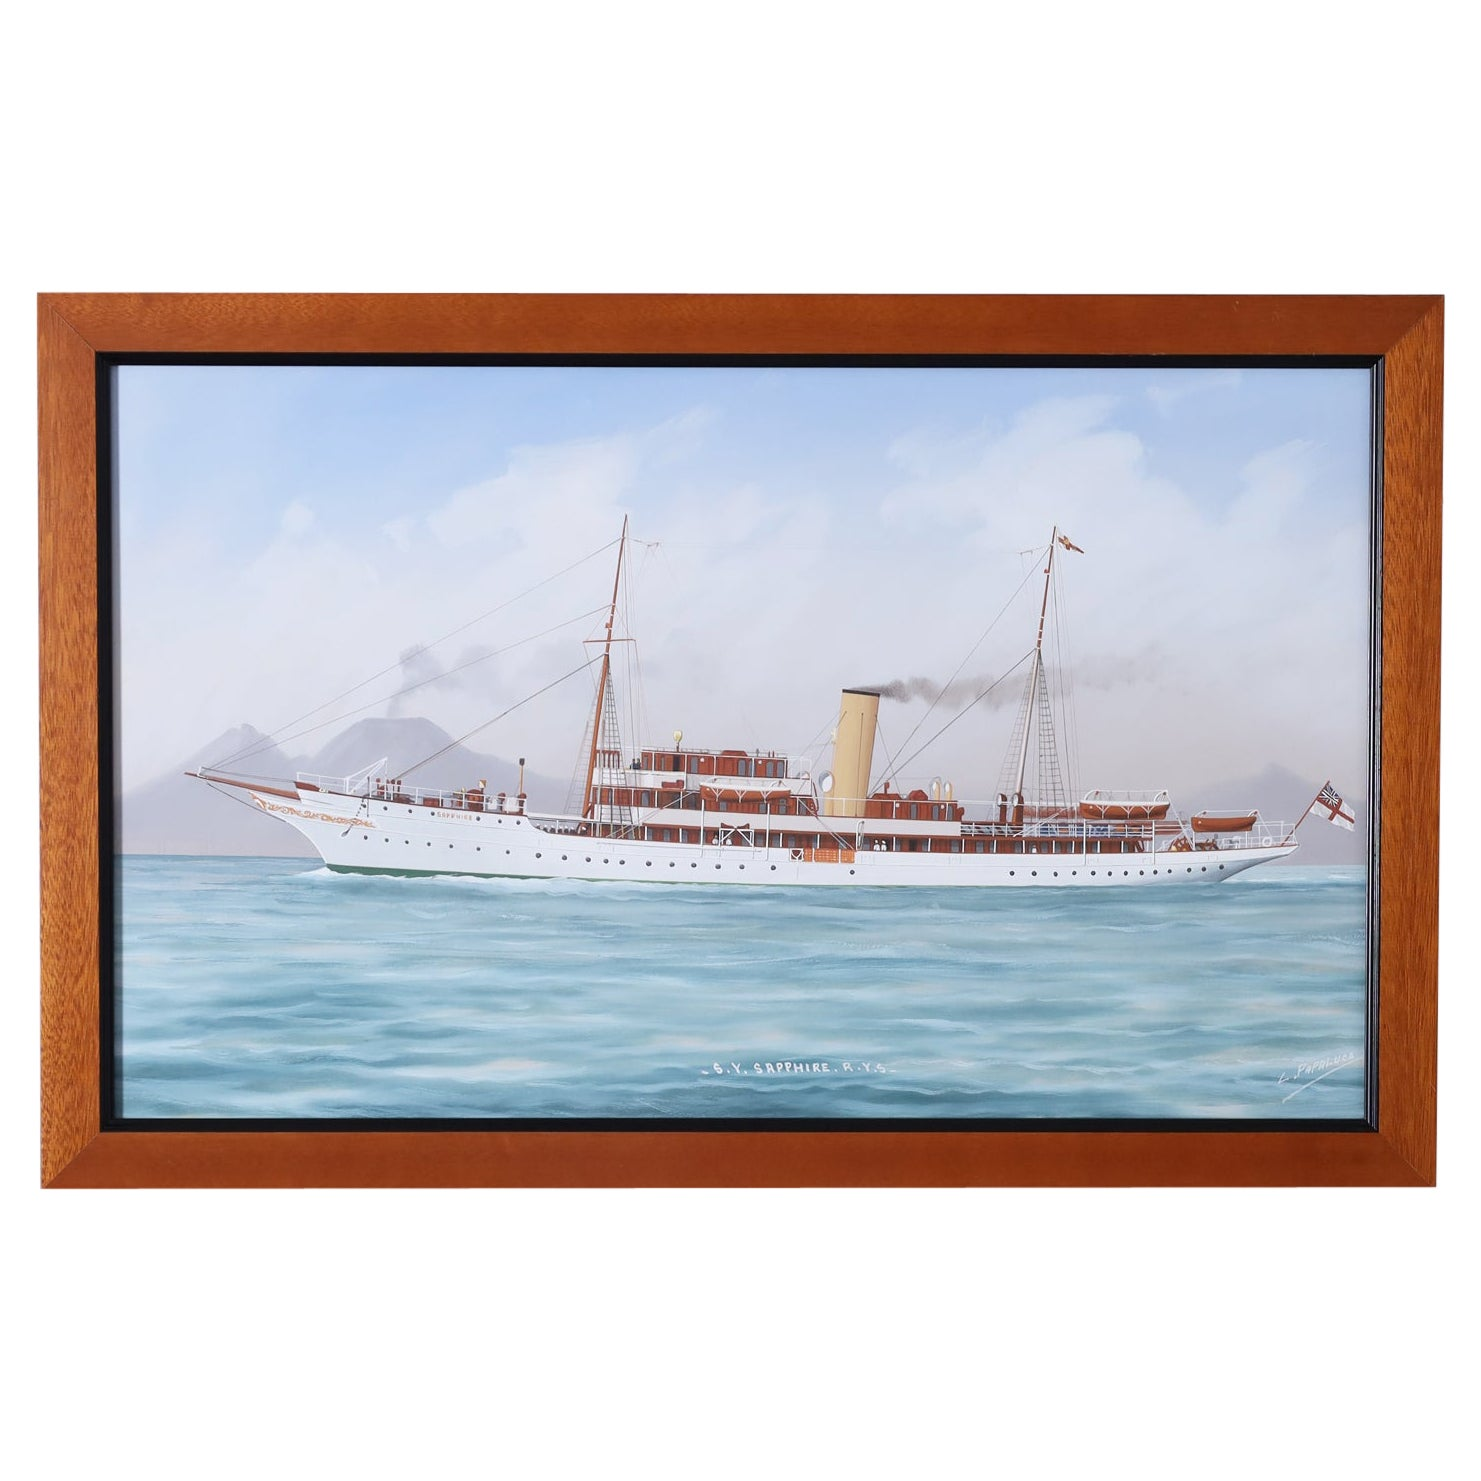 Antique Framed Painting of a Yacht by Luca Papaluca